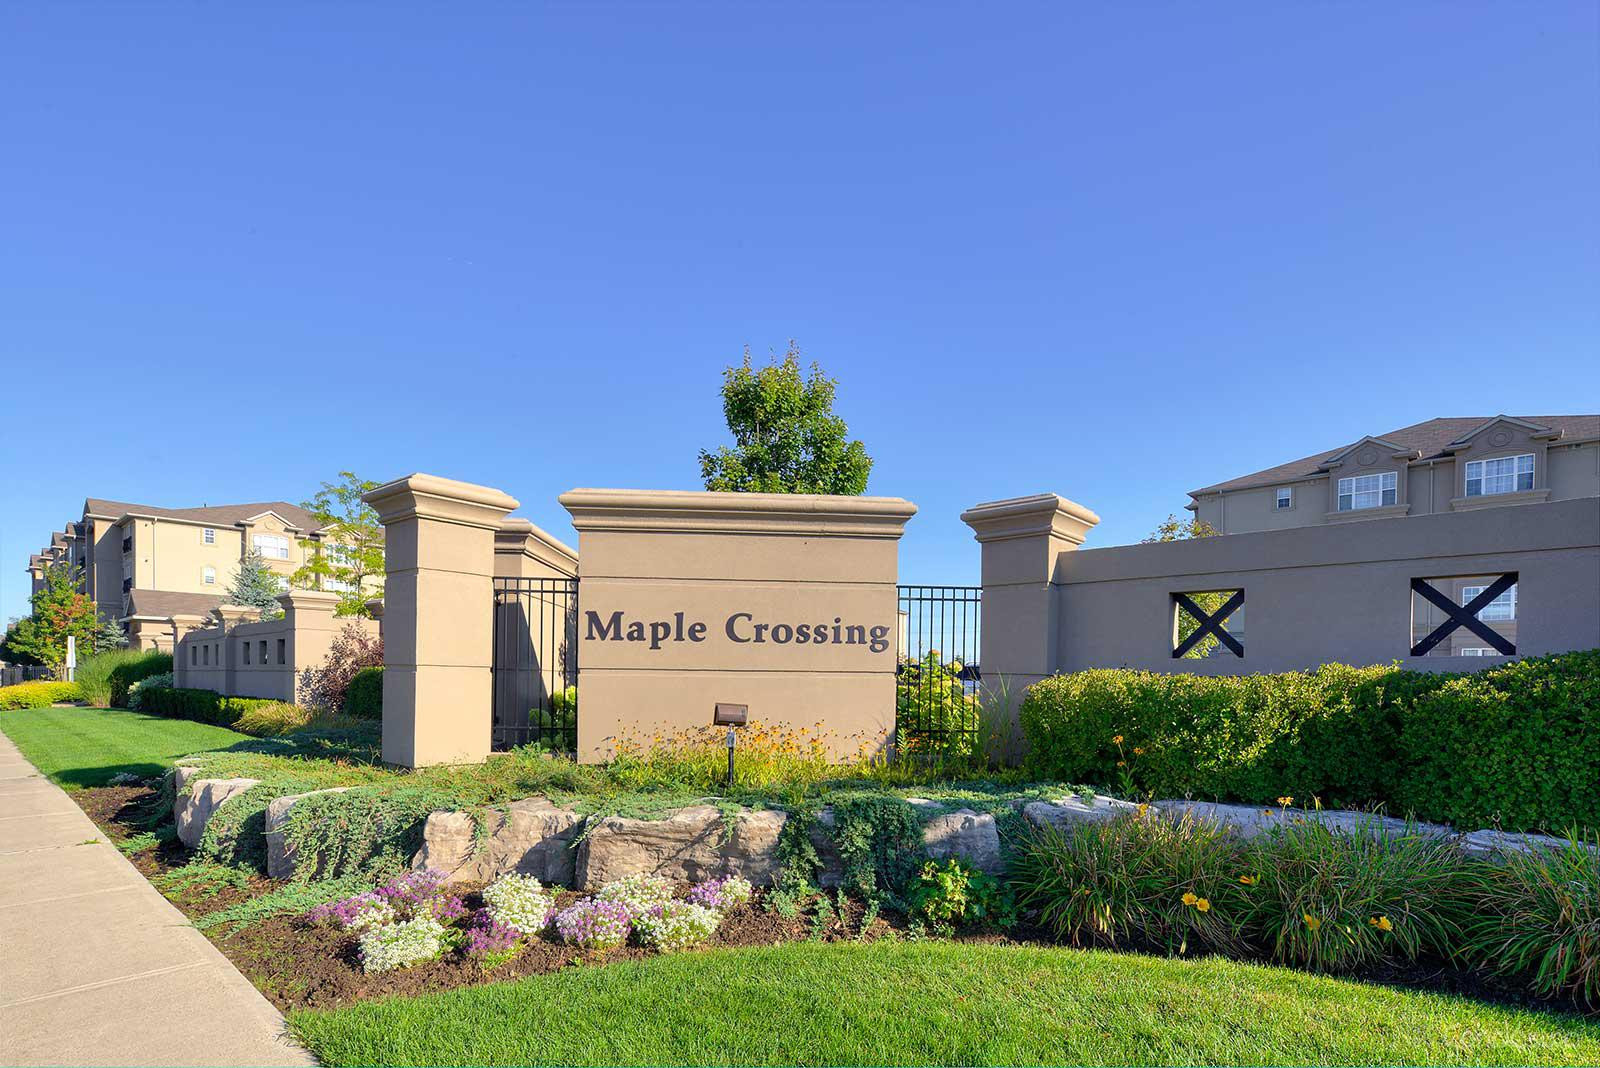 Maple Crossing Ⅰ at 1471 Maple Ave, Milton 1